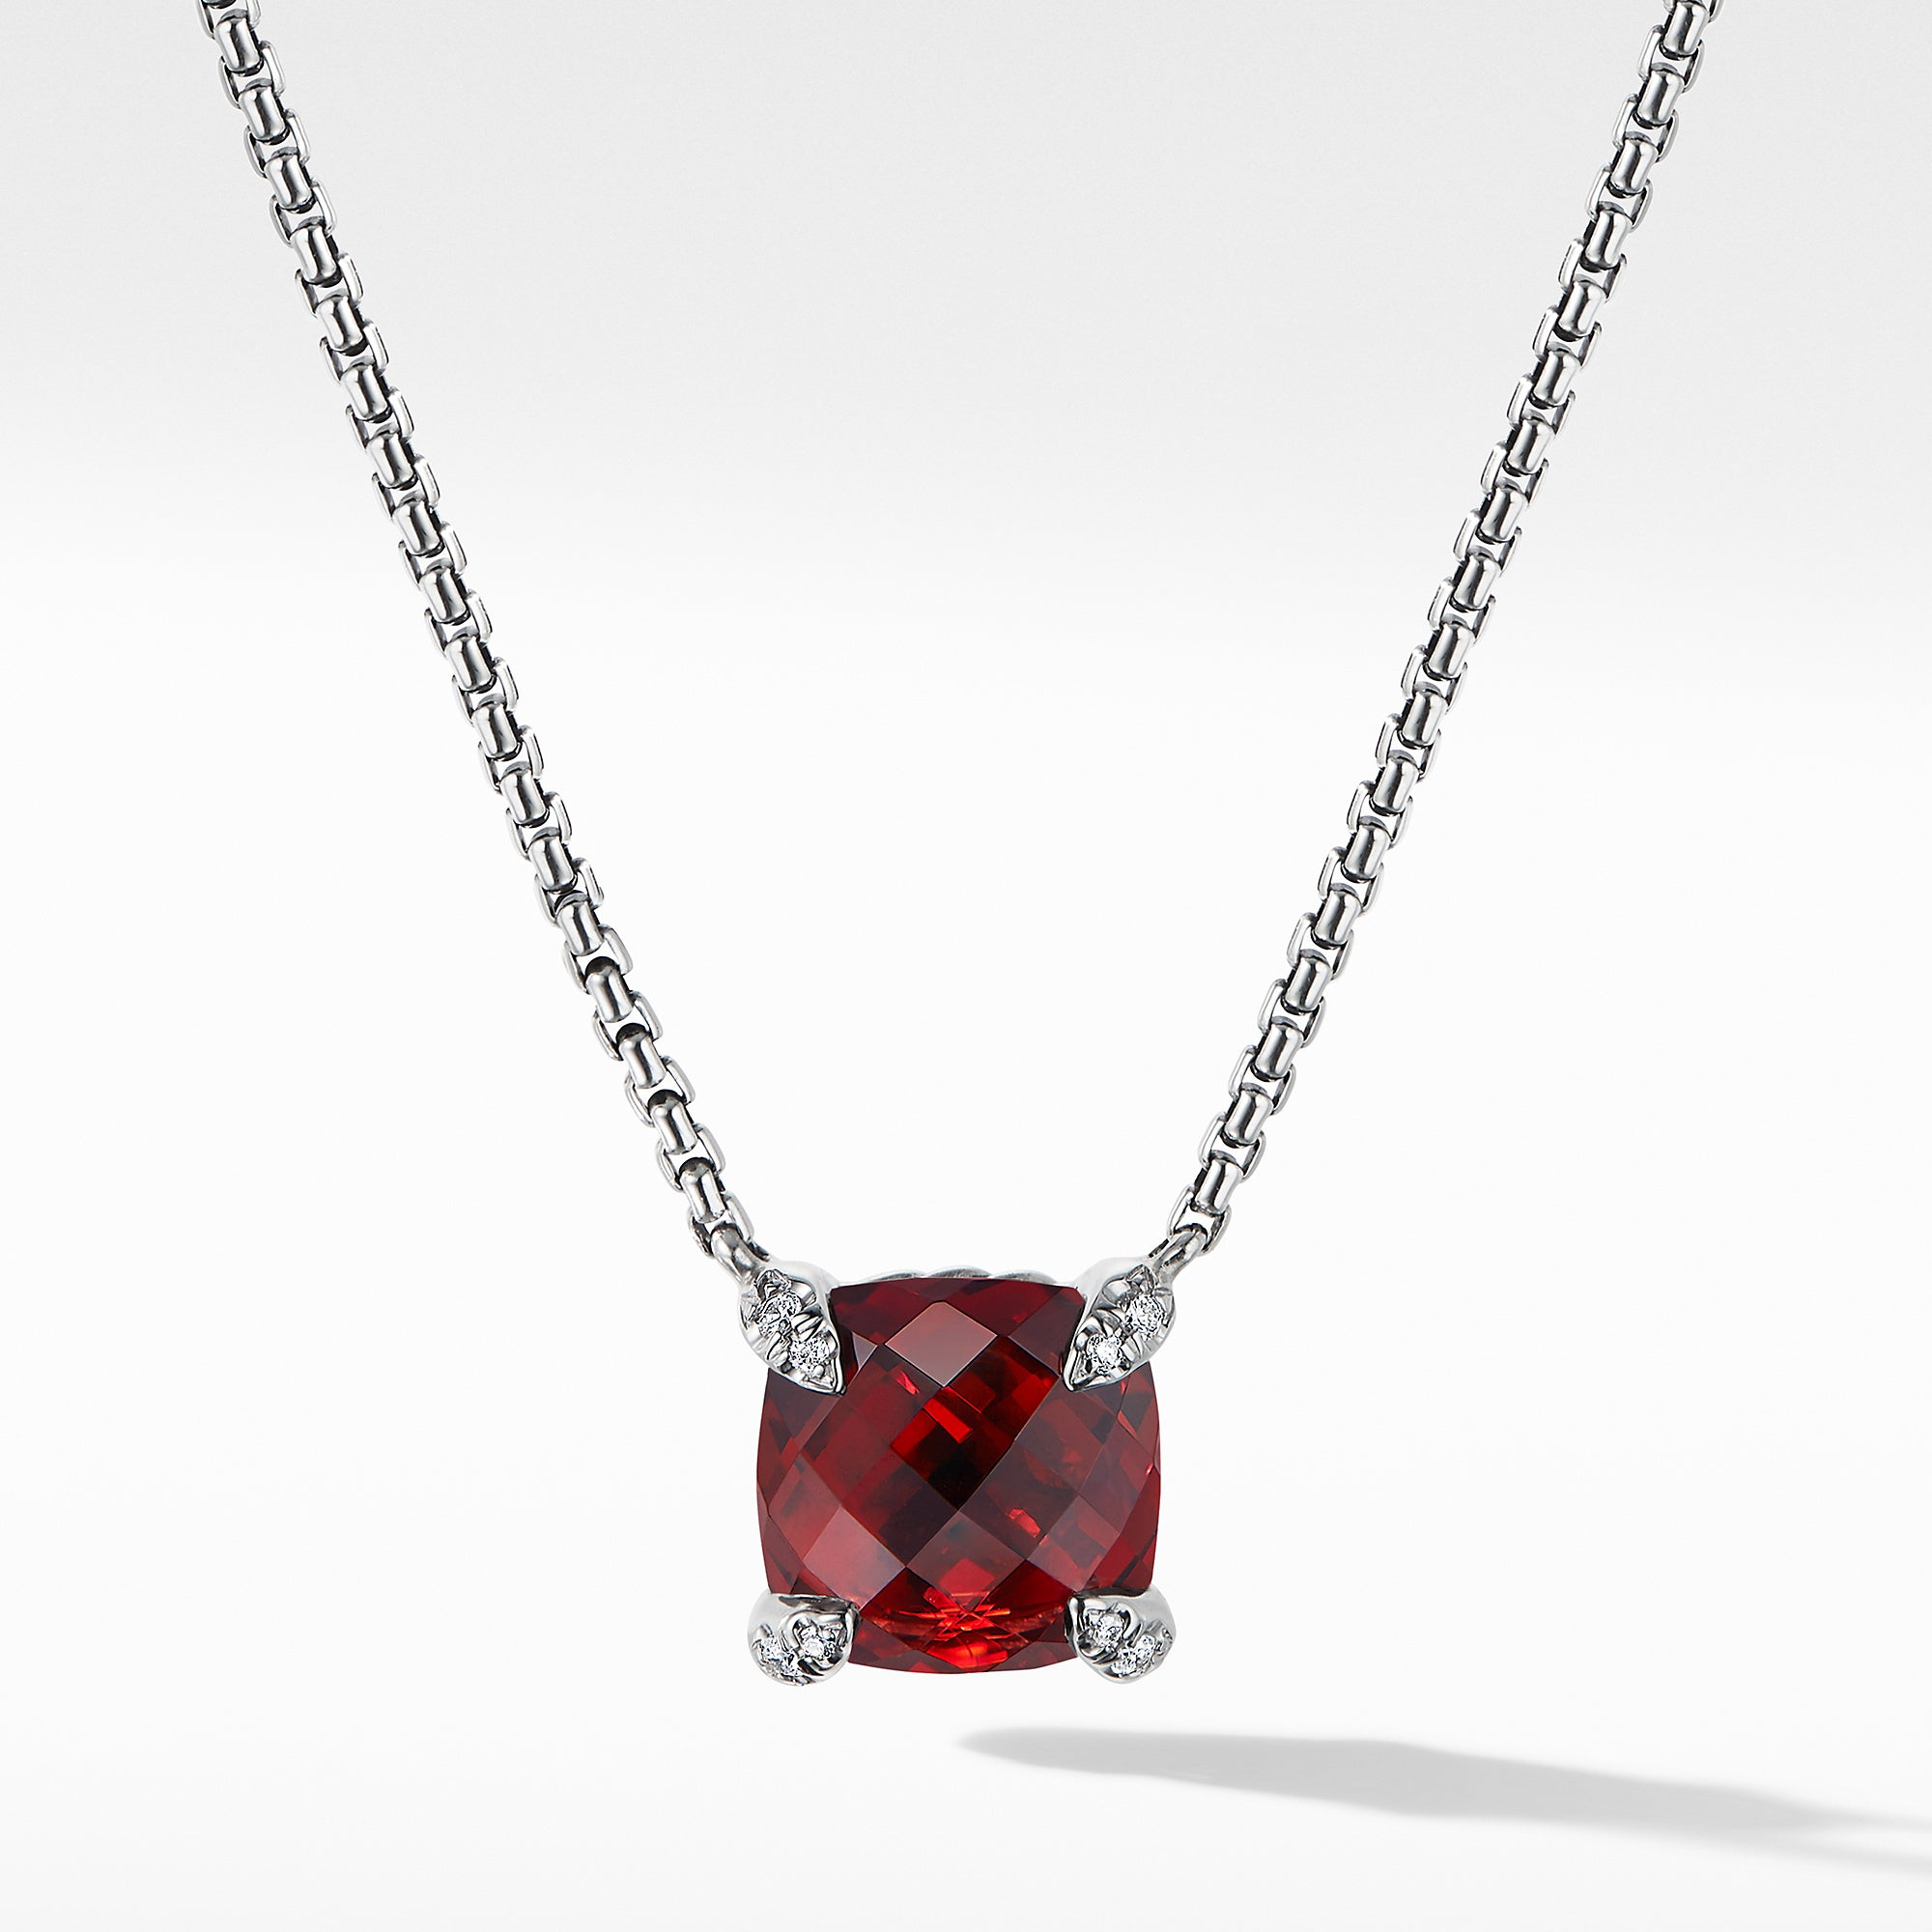 Chatelaine® Pendant Necklace with Rhodalite Garnet and Diamonds